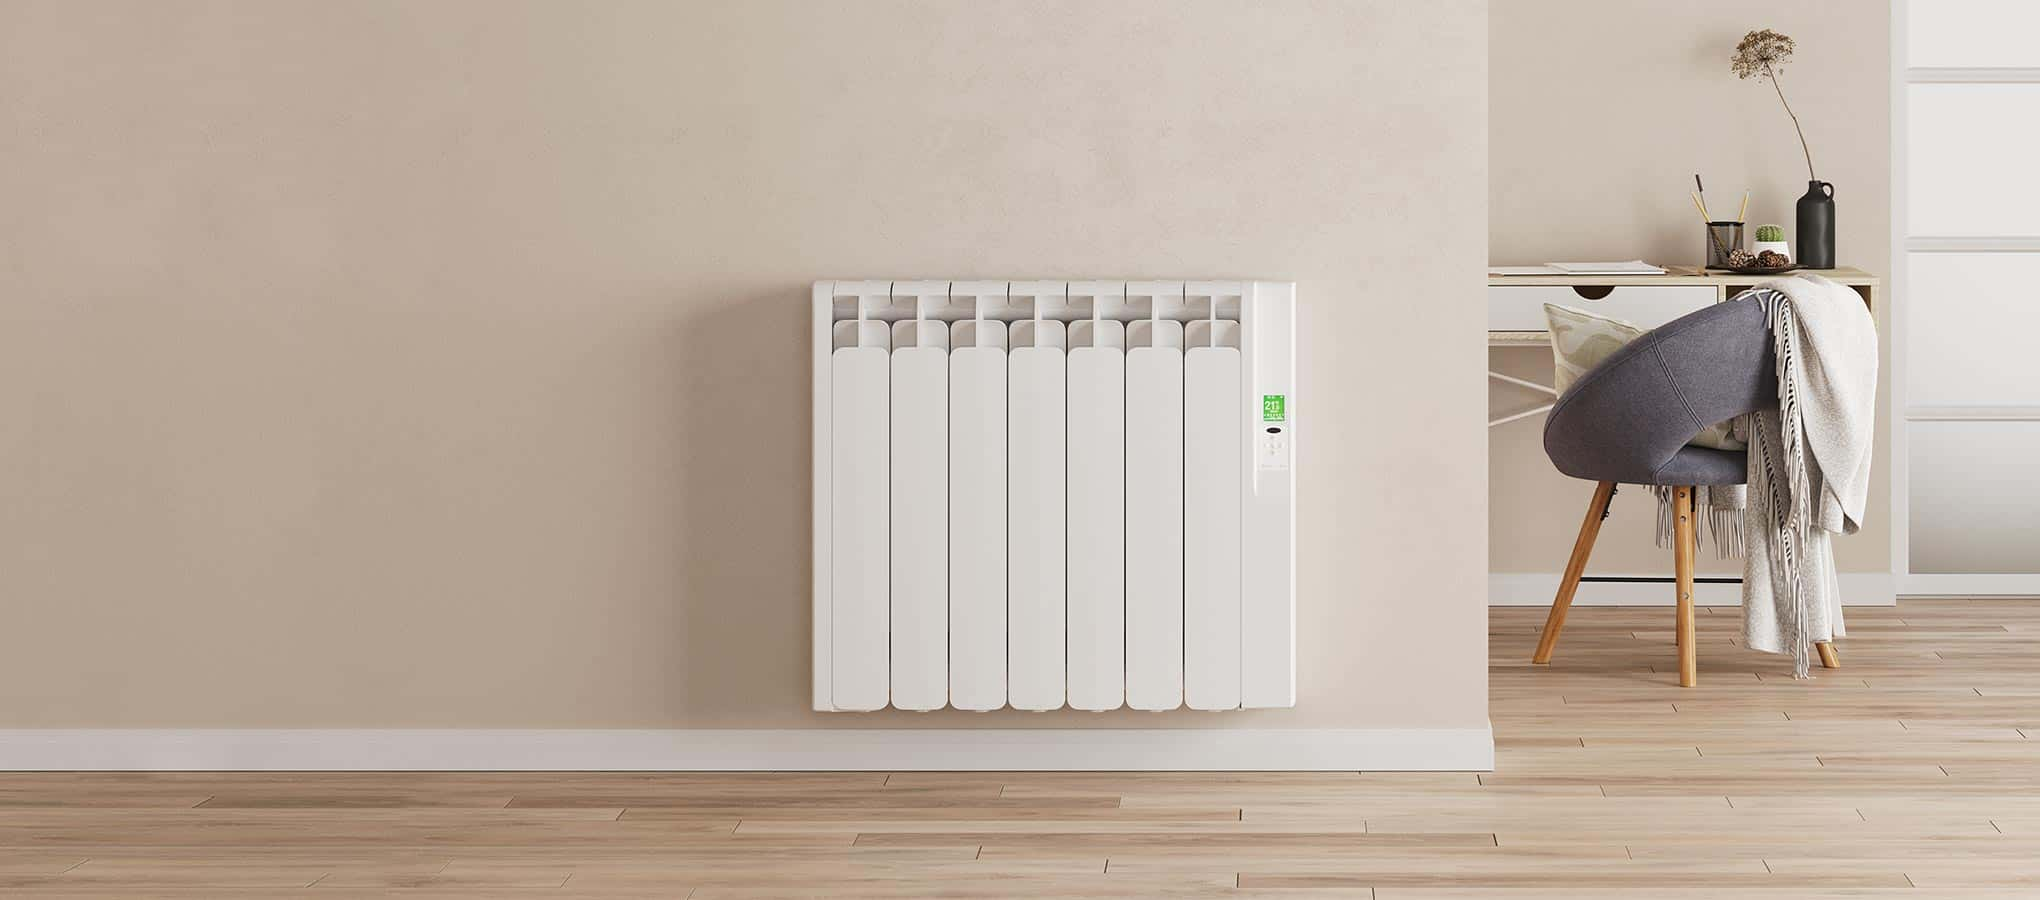 Rointe Kyros smart timer electric radiator in white wall mounted in living room